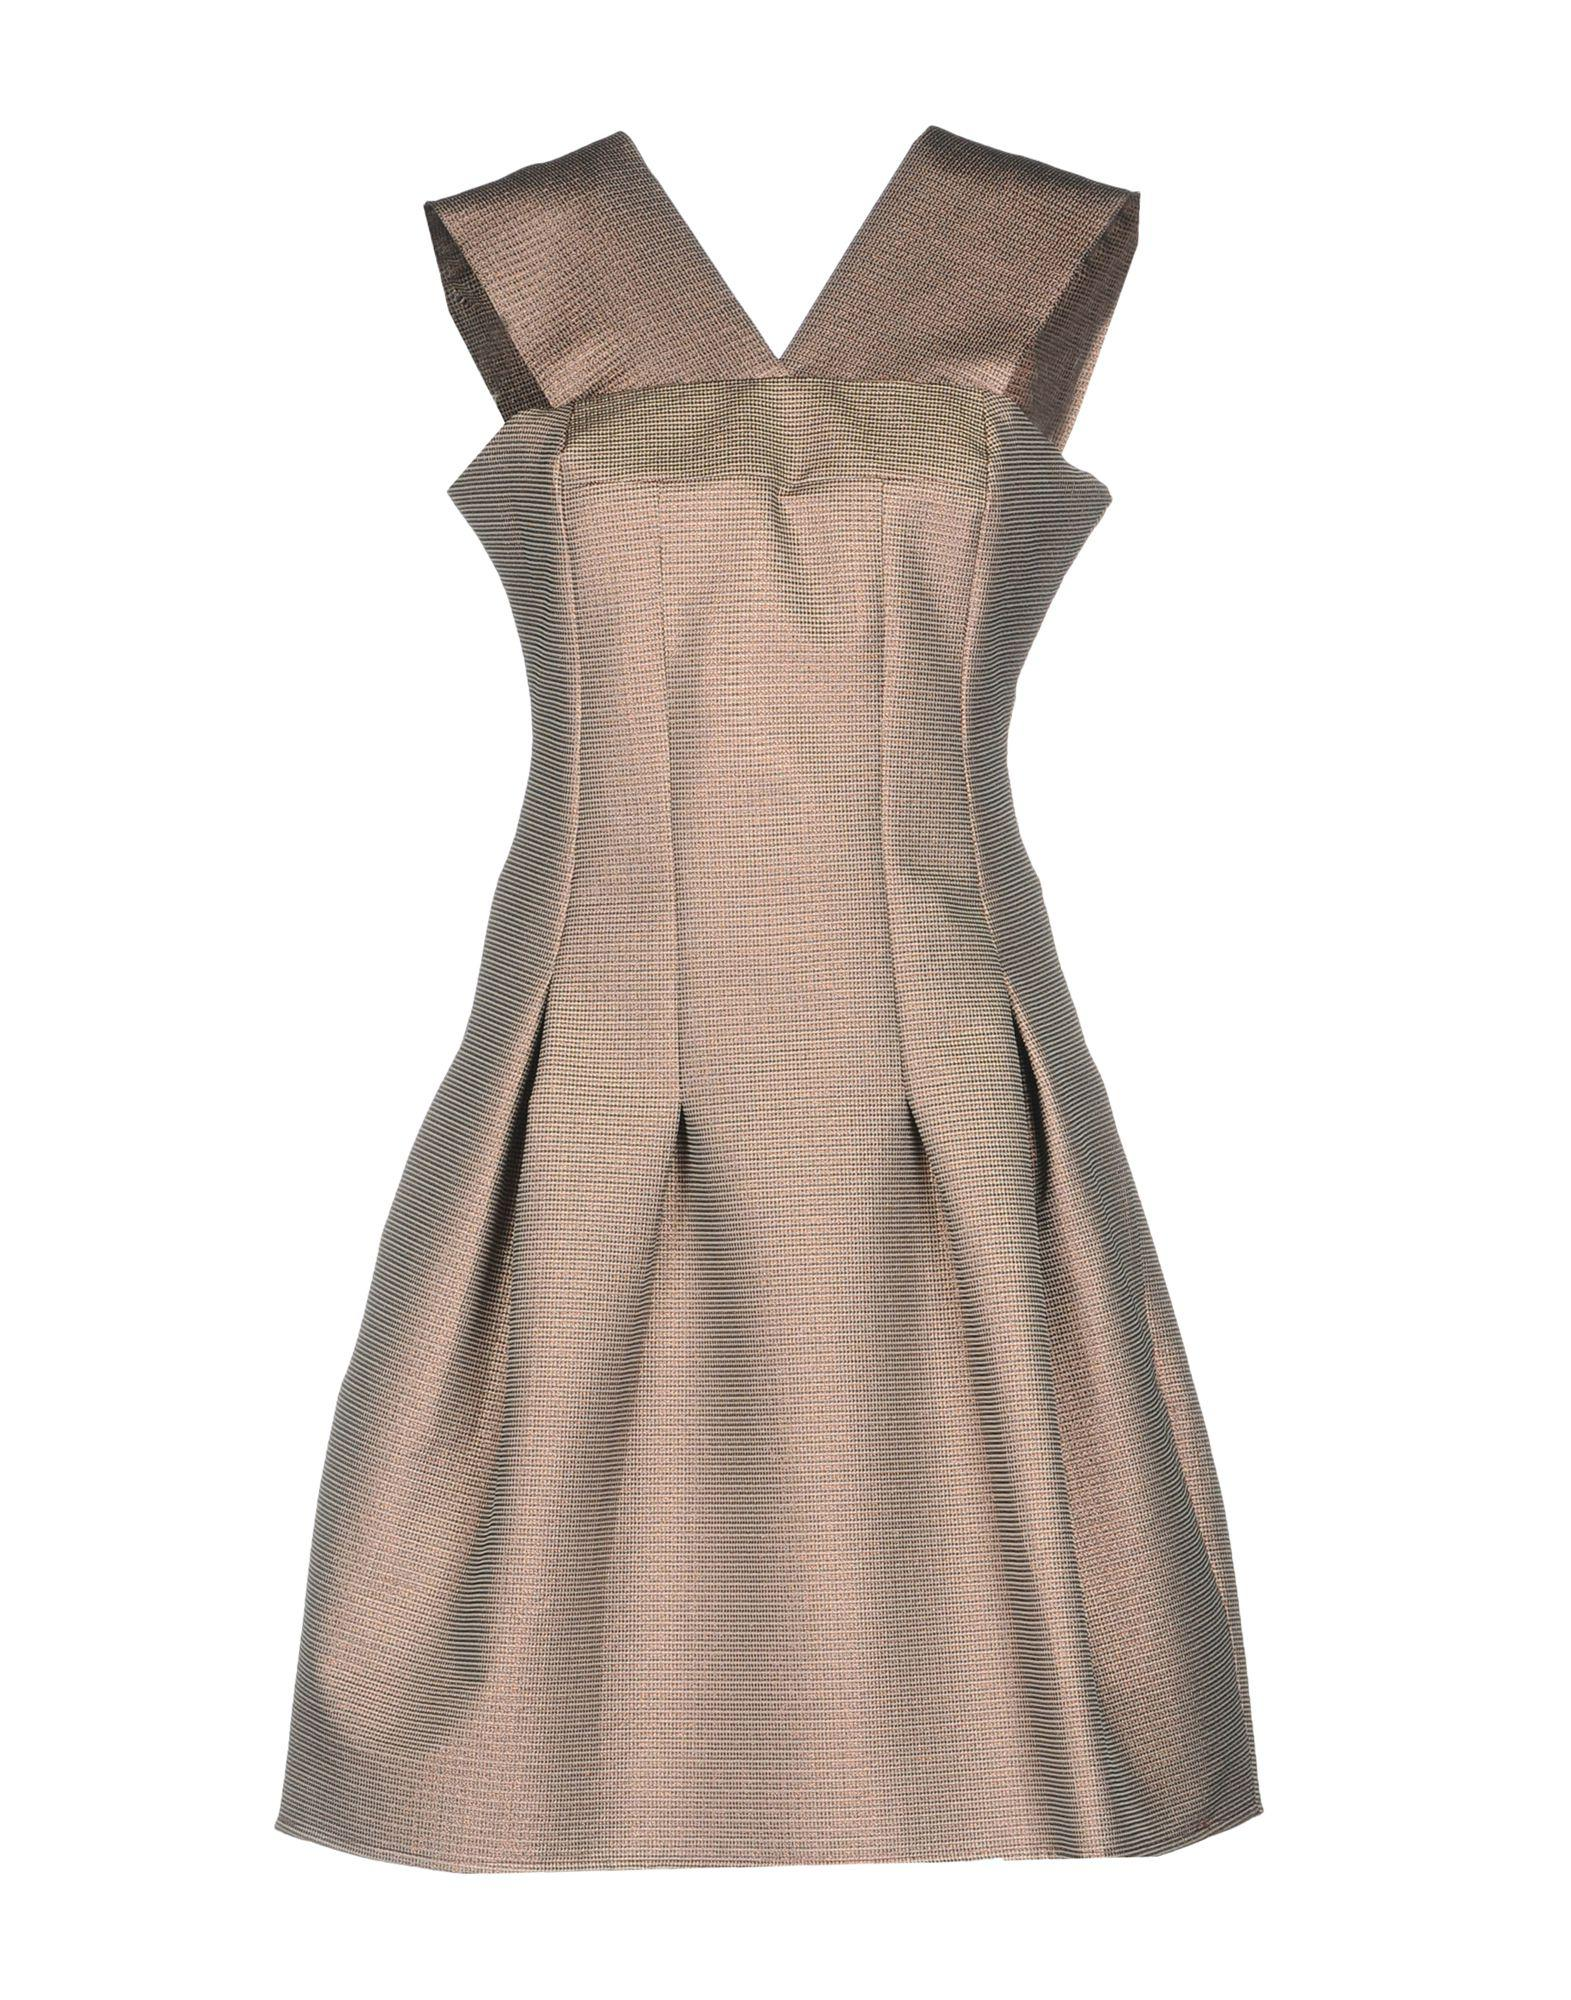 DRESSES - Short dresses Annie P Outlet With Credit Card Buy Cheap Outlet Discount For Cheap Outlet Browse Sale Original SLI16ud